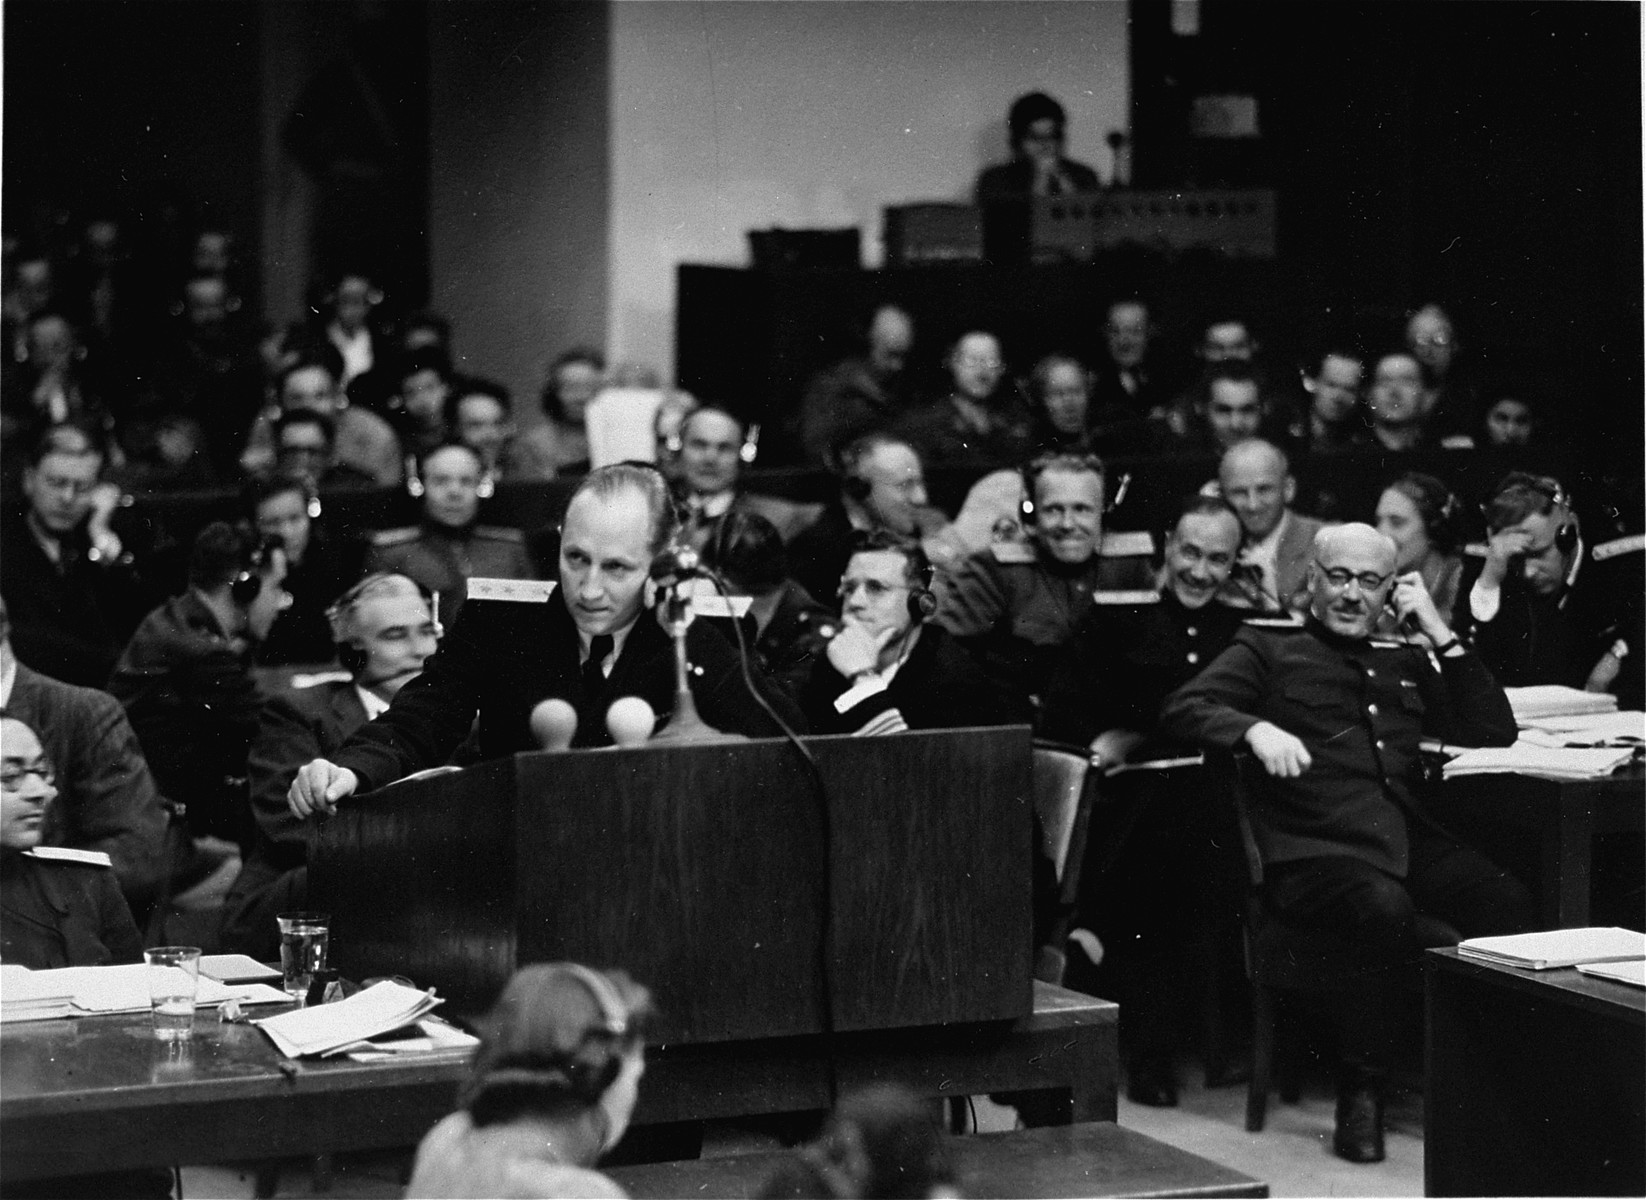 Chief Soviet prosecutor General R.A. Rudenko speaks at the International Military Tribunal trial of war criminals at Nuremberg.